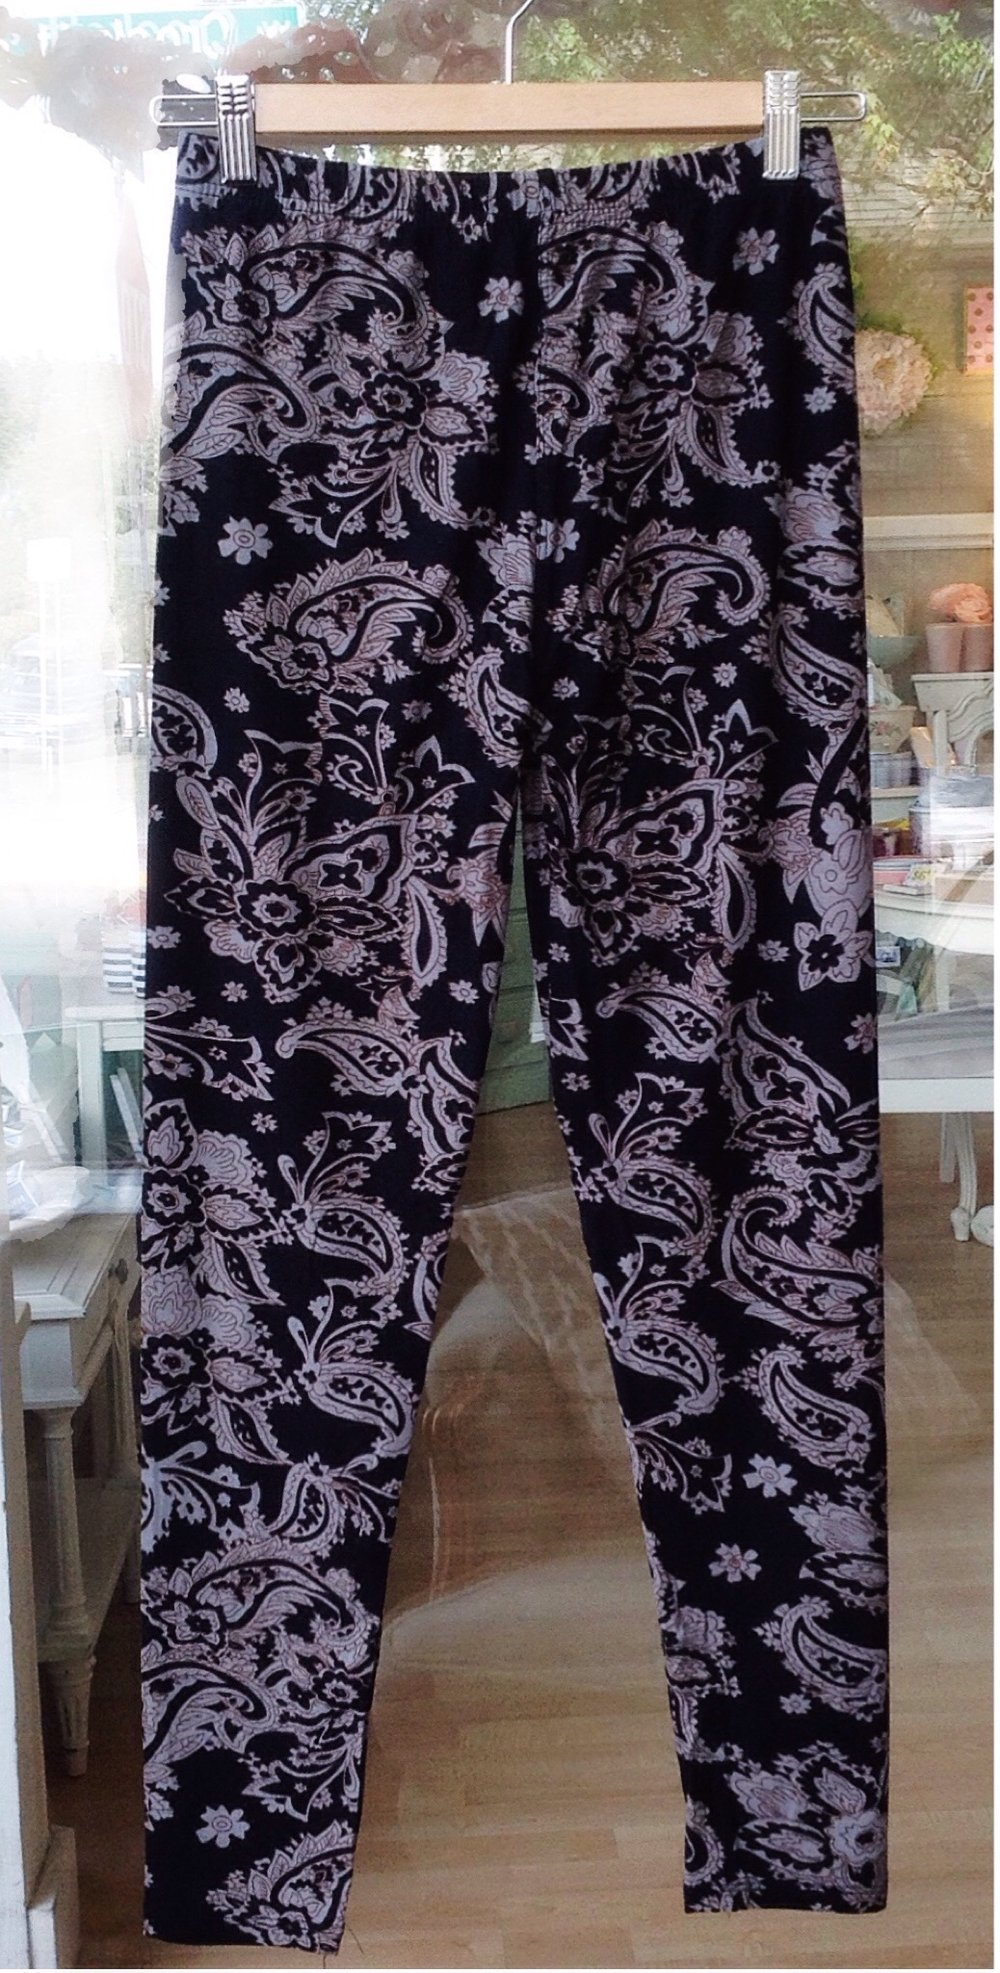 Full-length, one-size leggings, $21